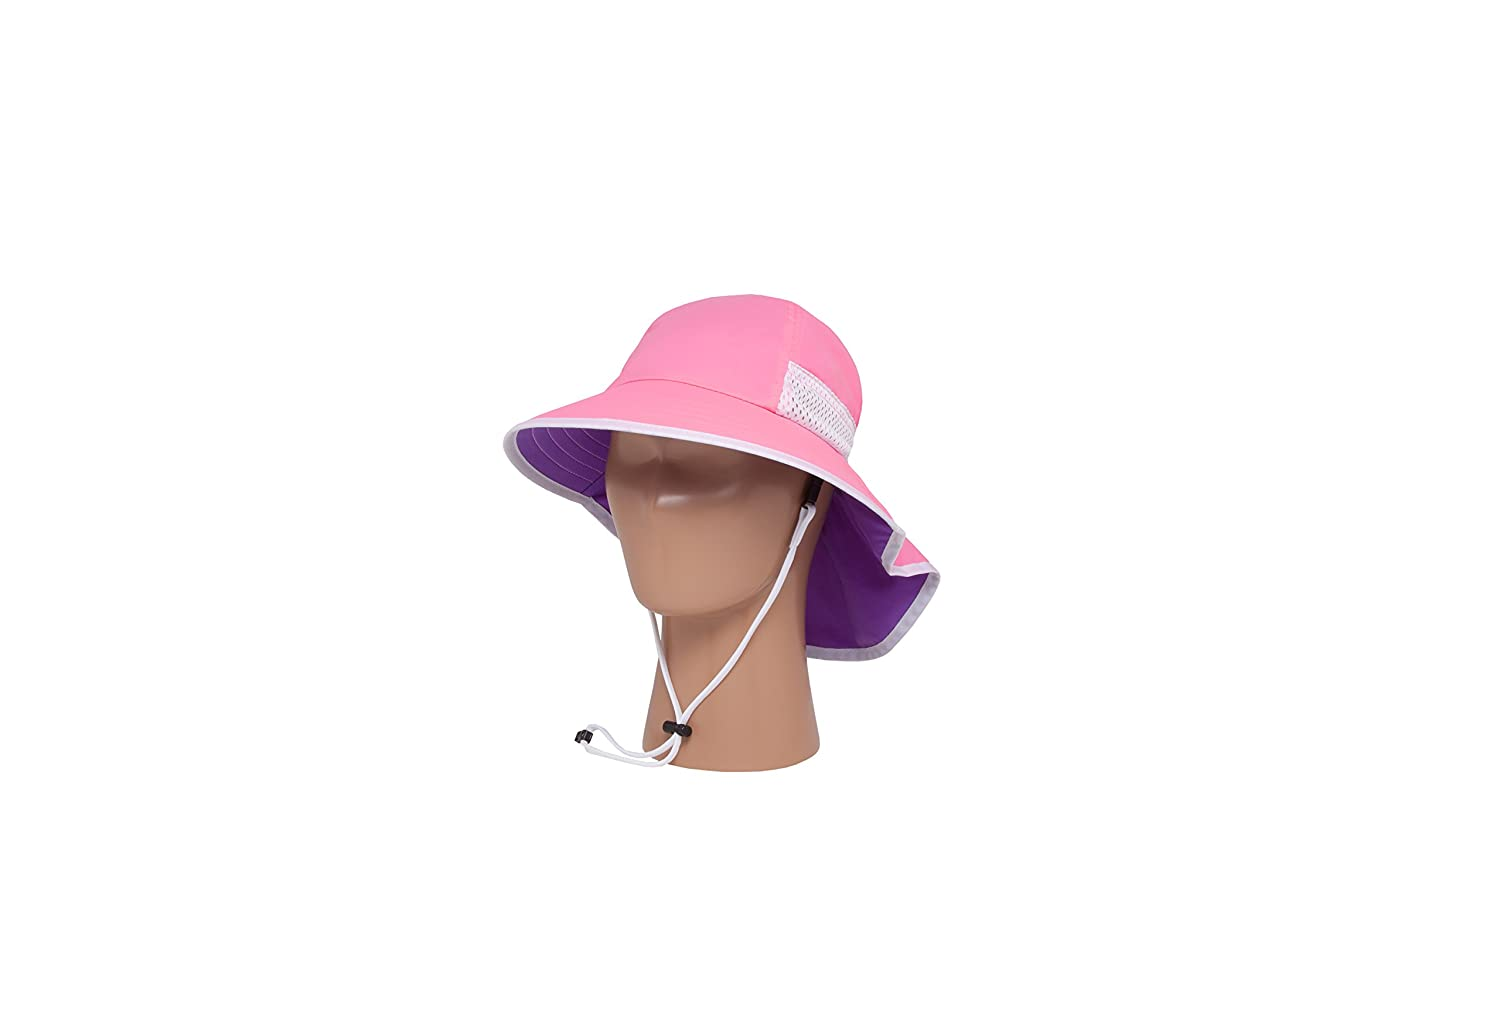 417042f2ddb91 Amazon.com  Sunday Afternoons Kids Play Hat  Clothing